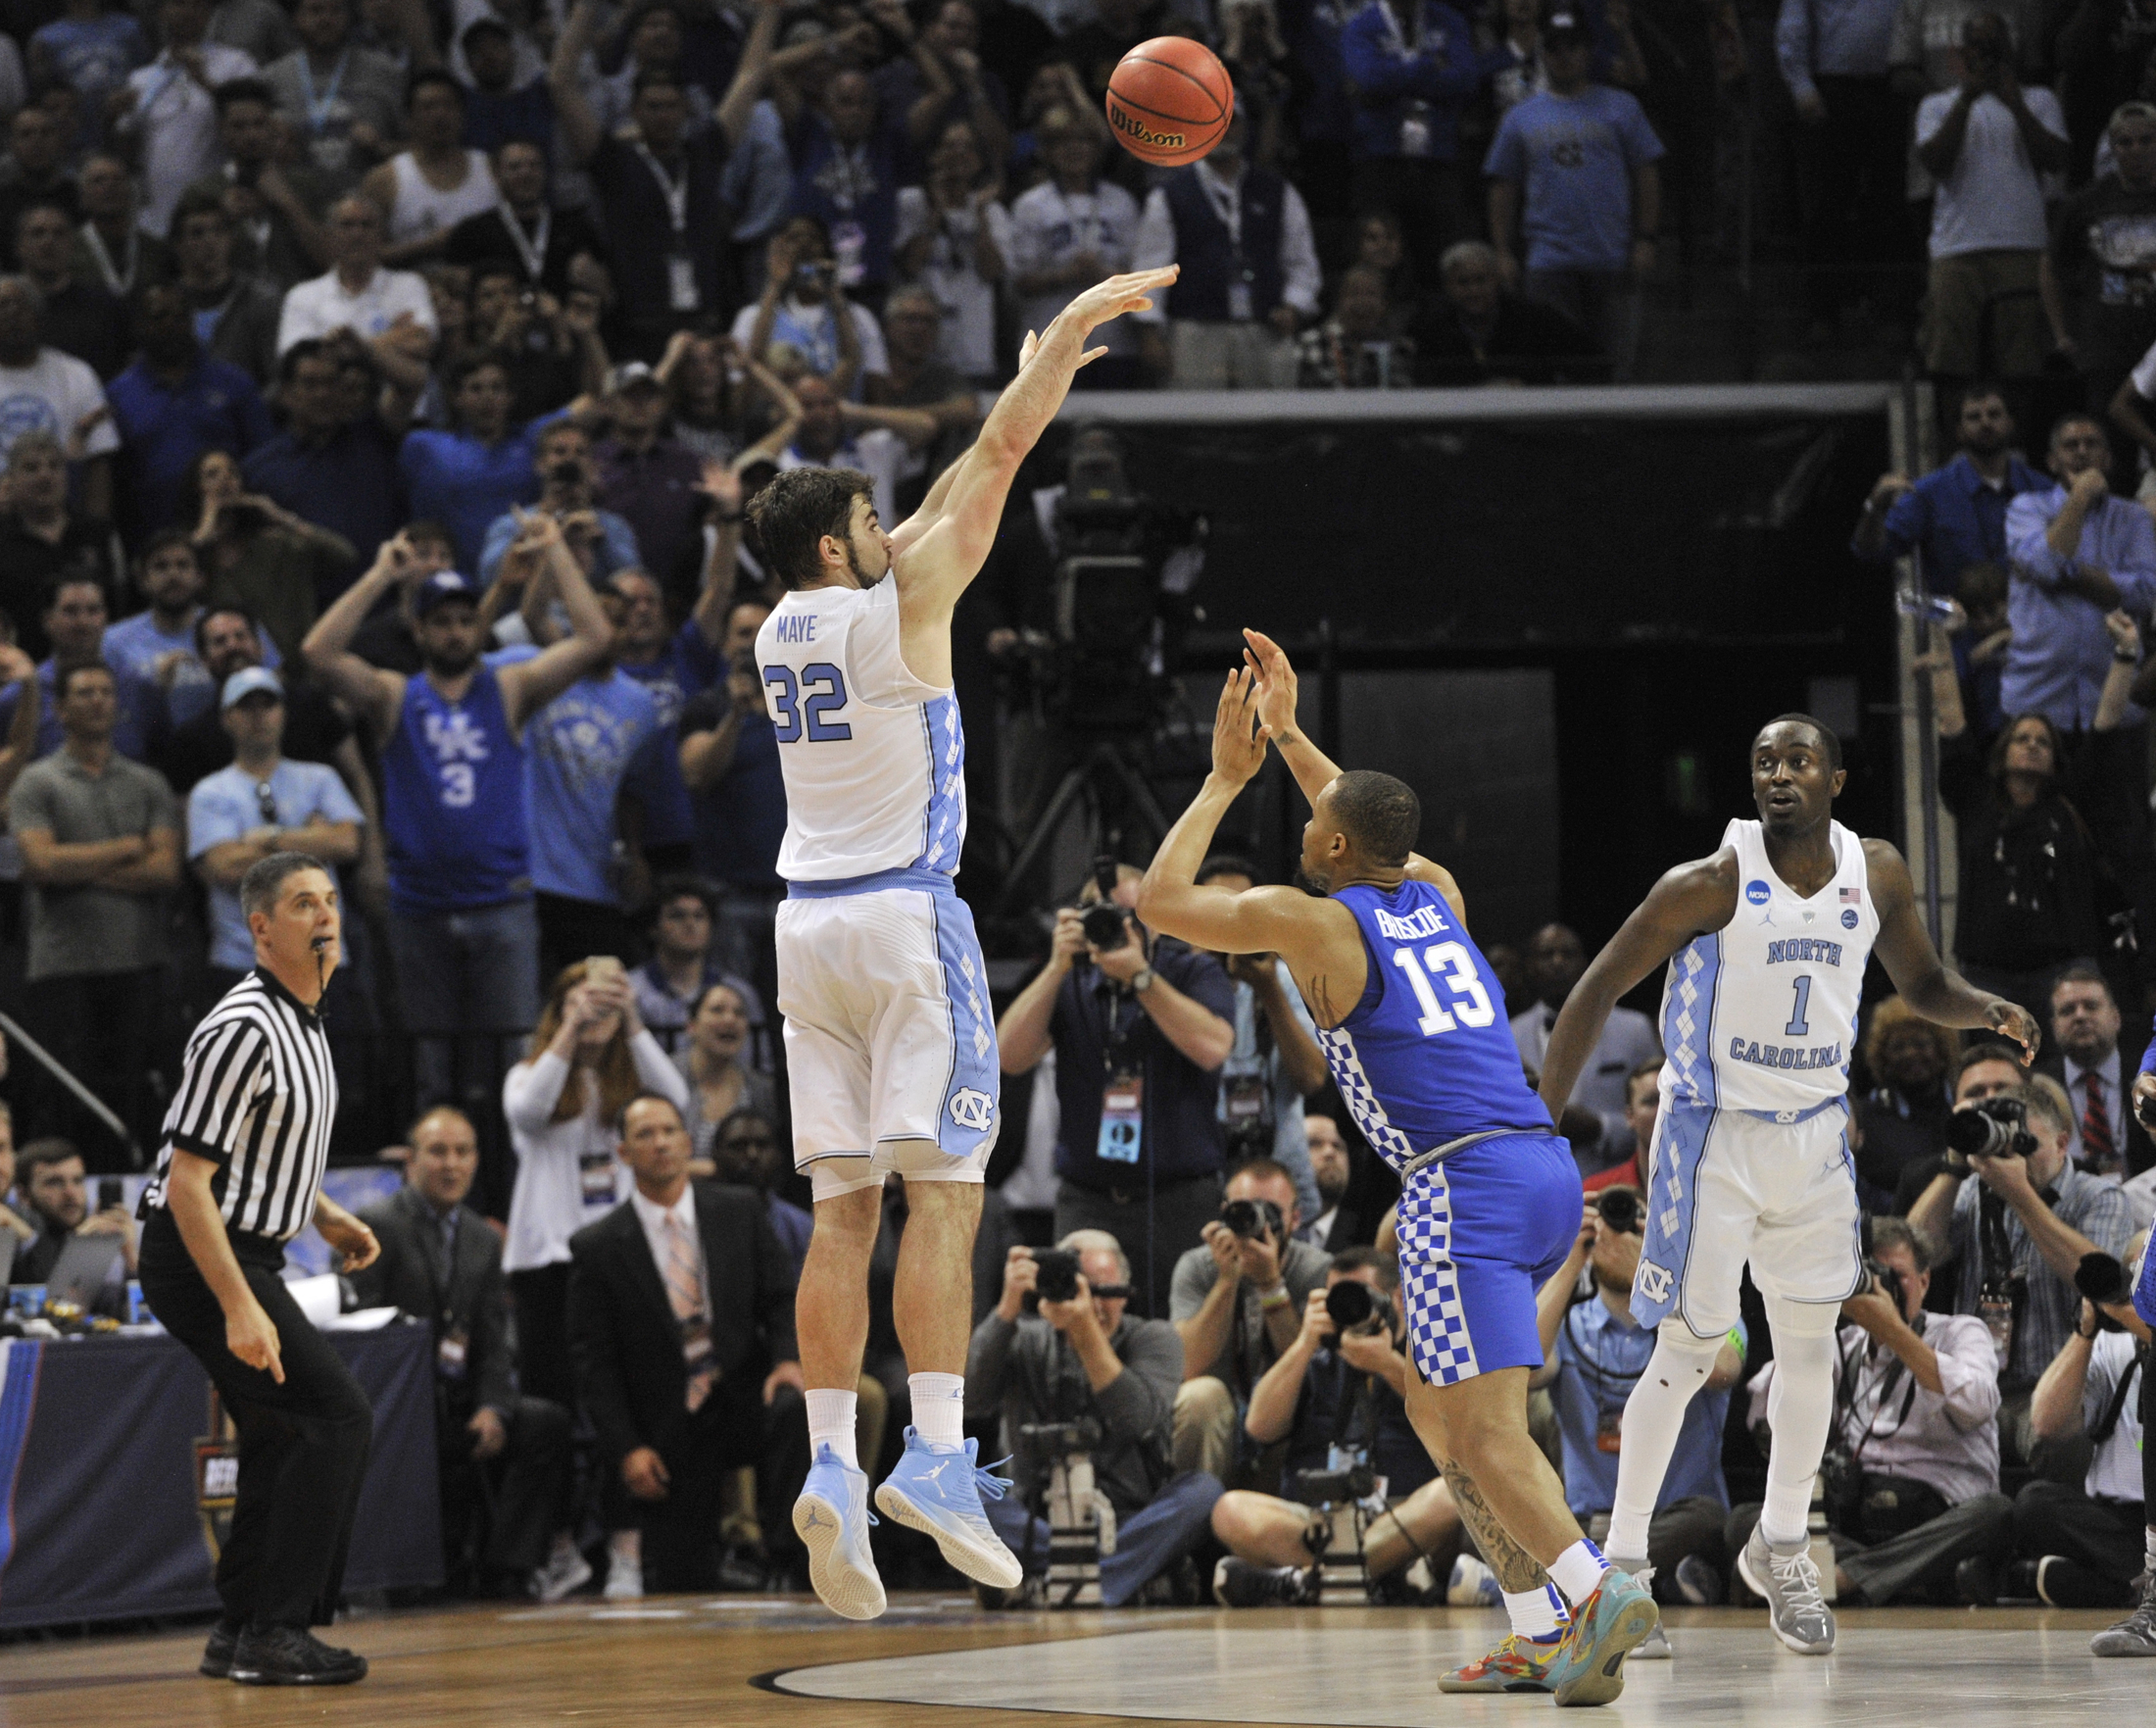 North Carolina forward Luke Maye (32) shoots the winning basket as Kentucky guard Isaiah Briscoe (13) defends in the second half of the South Regional final game in the NCAA college basketball tournament Sunday, March 26, 2017, in Memphis, TN. (Brandon Dill/AP)